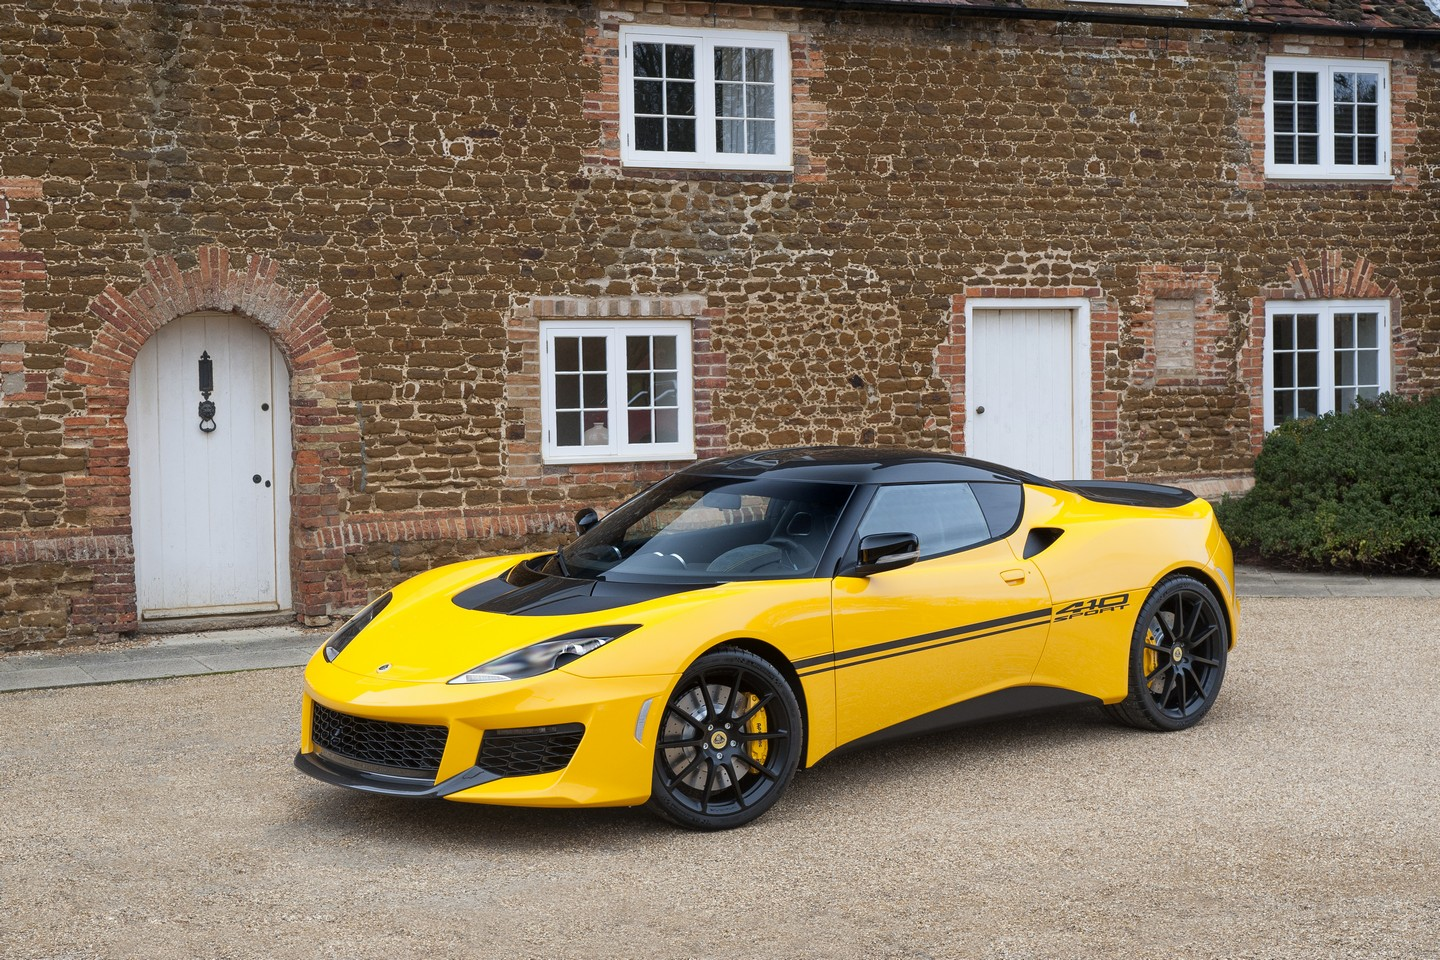 Lotus Evora Facelift (2015) 14